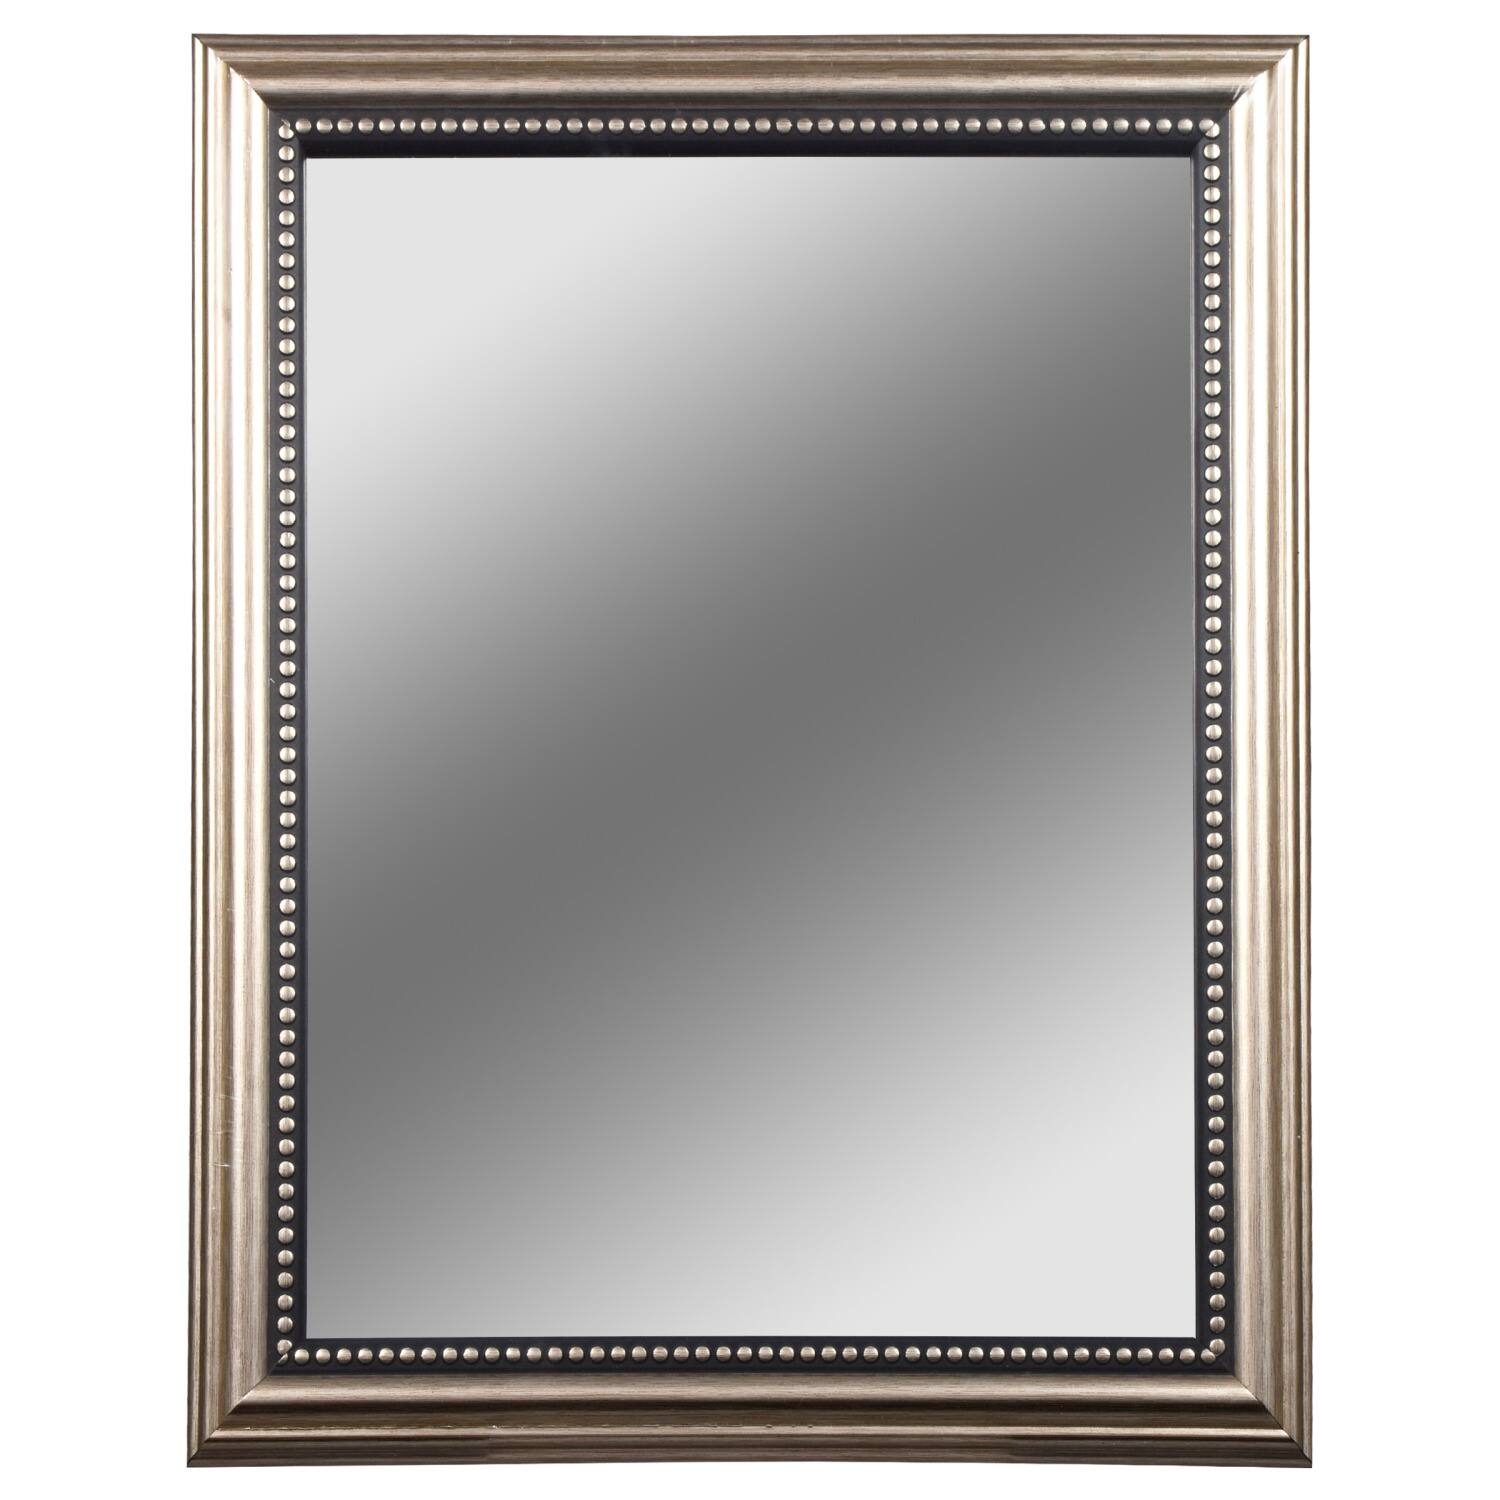 Dollartree | Bulk Accent Mirrors With Silver Plastic Within Silver Frame Accent Mirrors (Gallery 7 of 30)